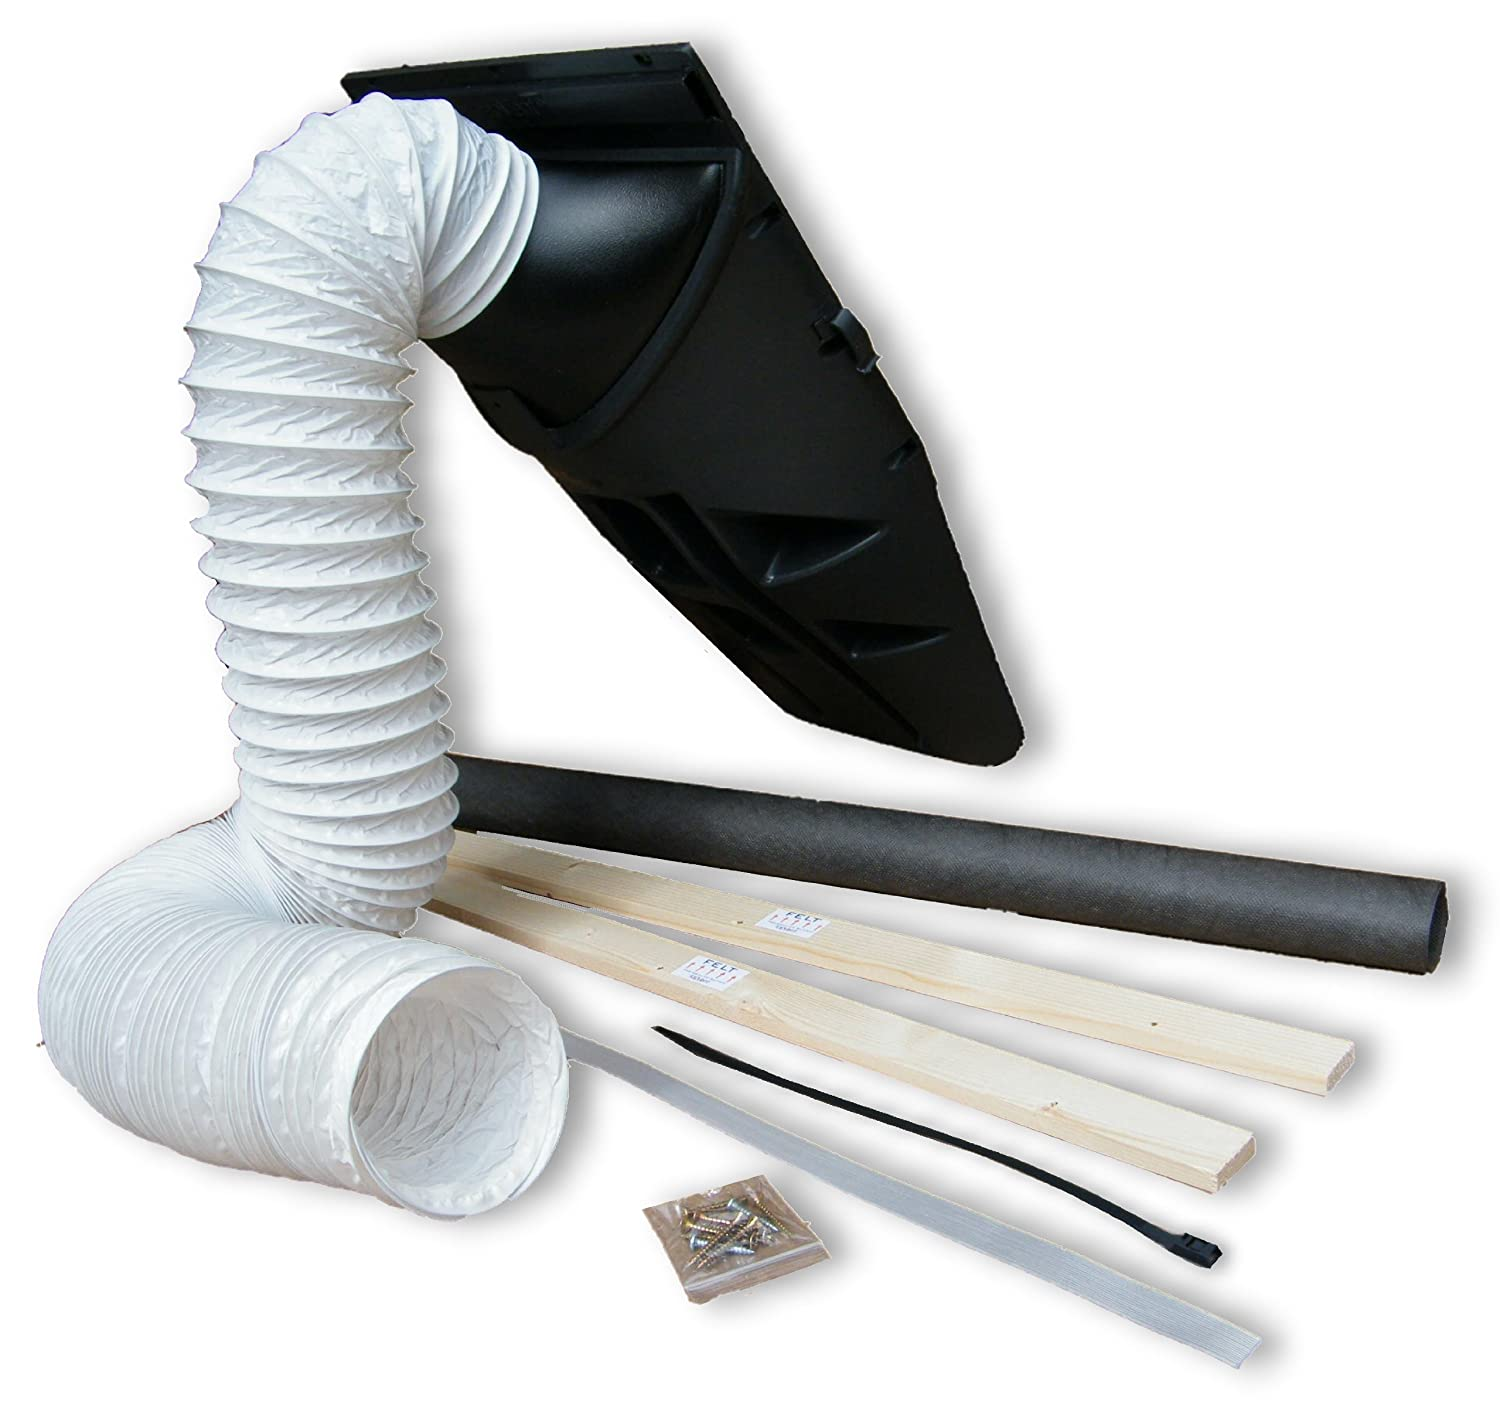 DIY Fit Extractor Fan Roof Vent To Vent From A Bathroom Or Ensuite. No Need  To Get On The Roof Or Remove A Roof Tile With LapVent. Fitted From The Loft.